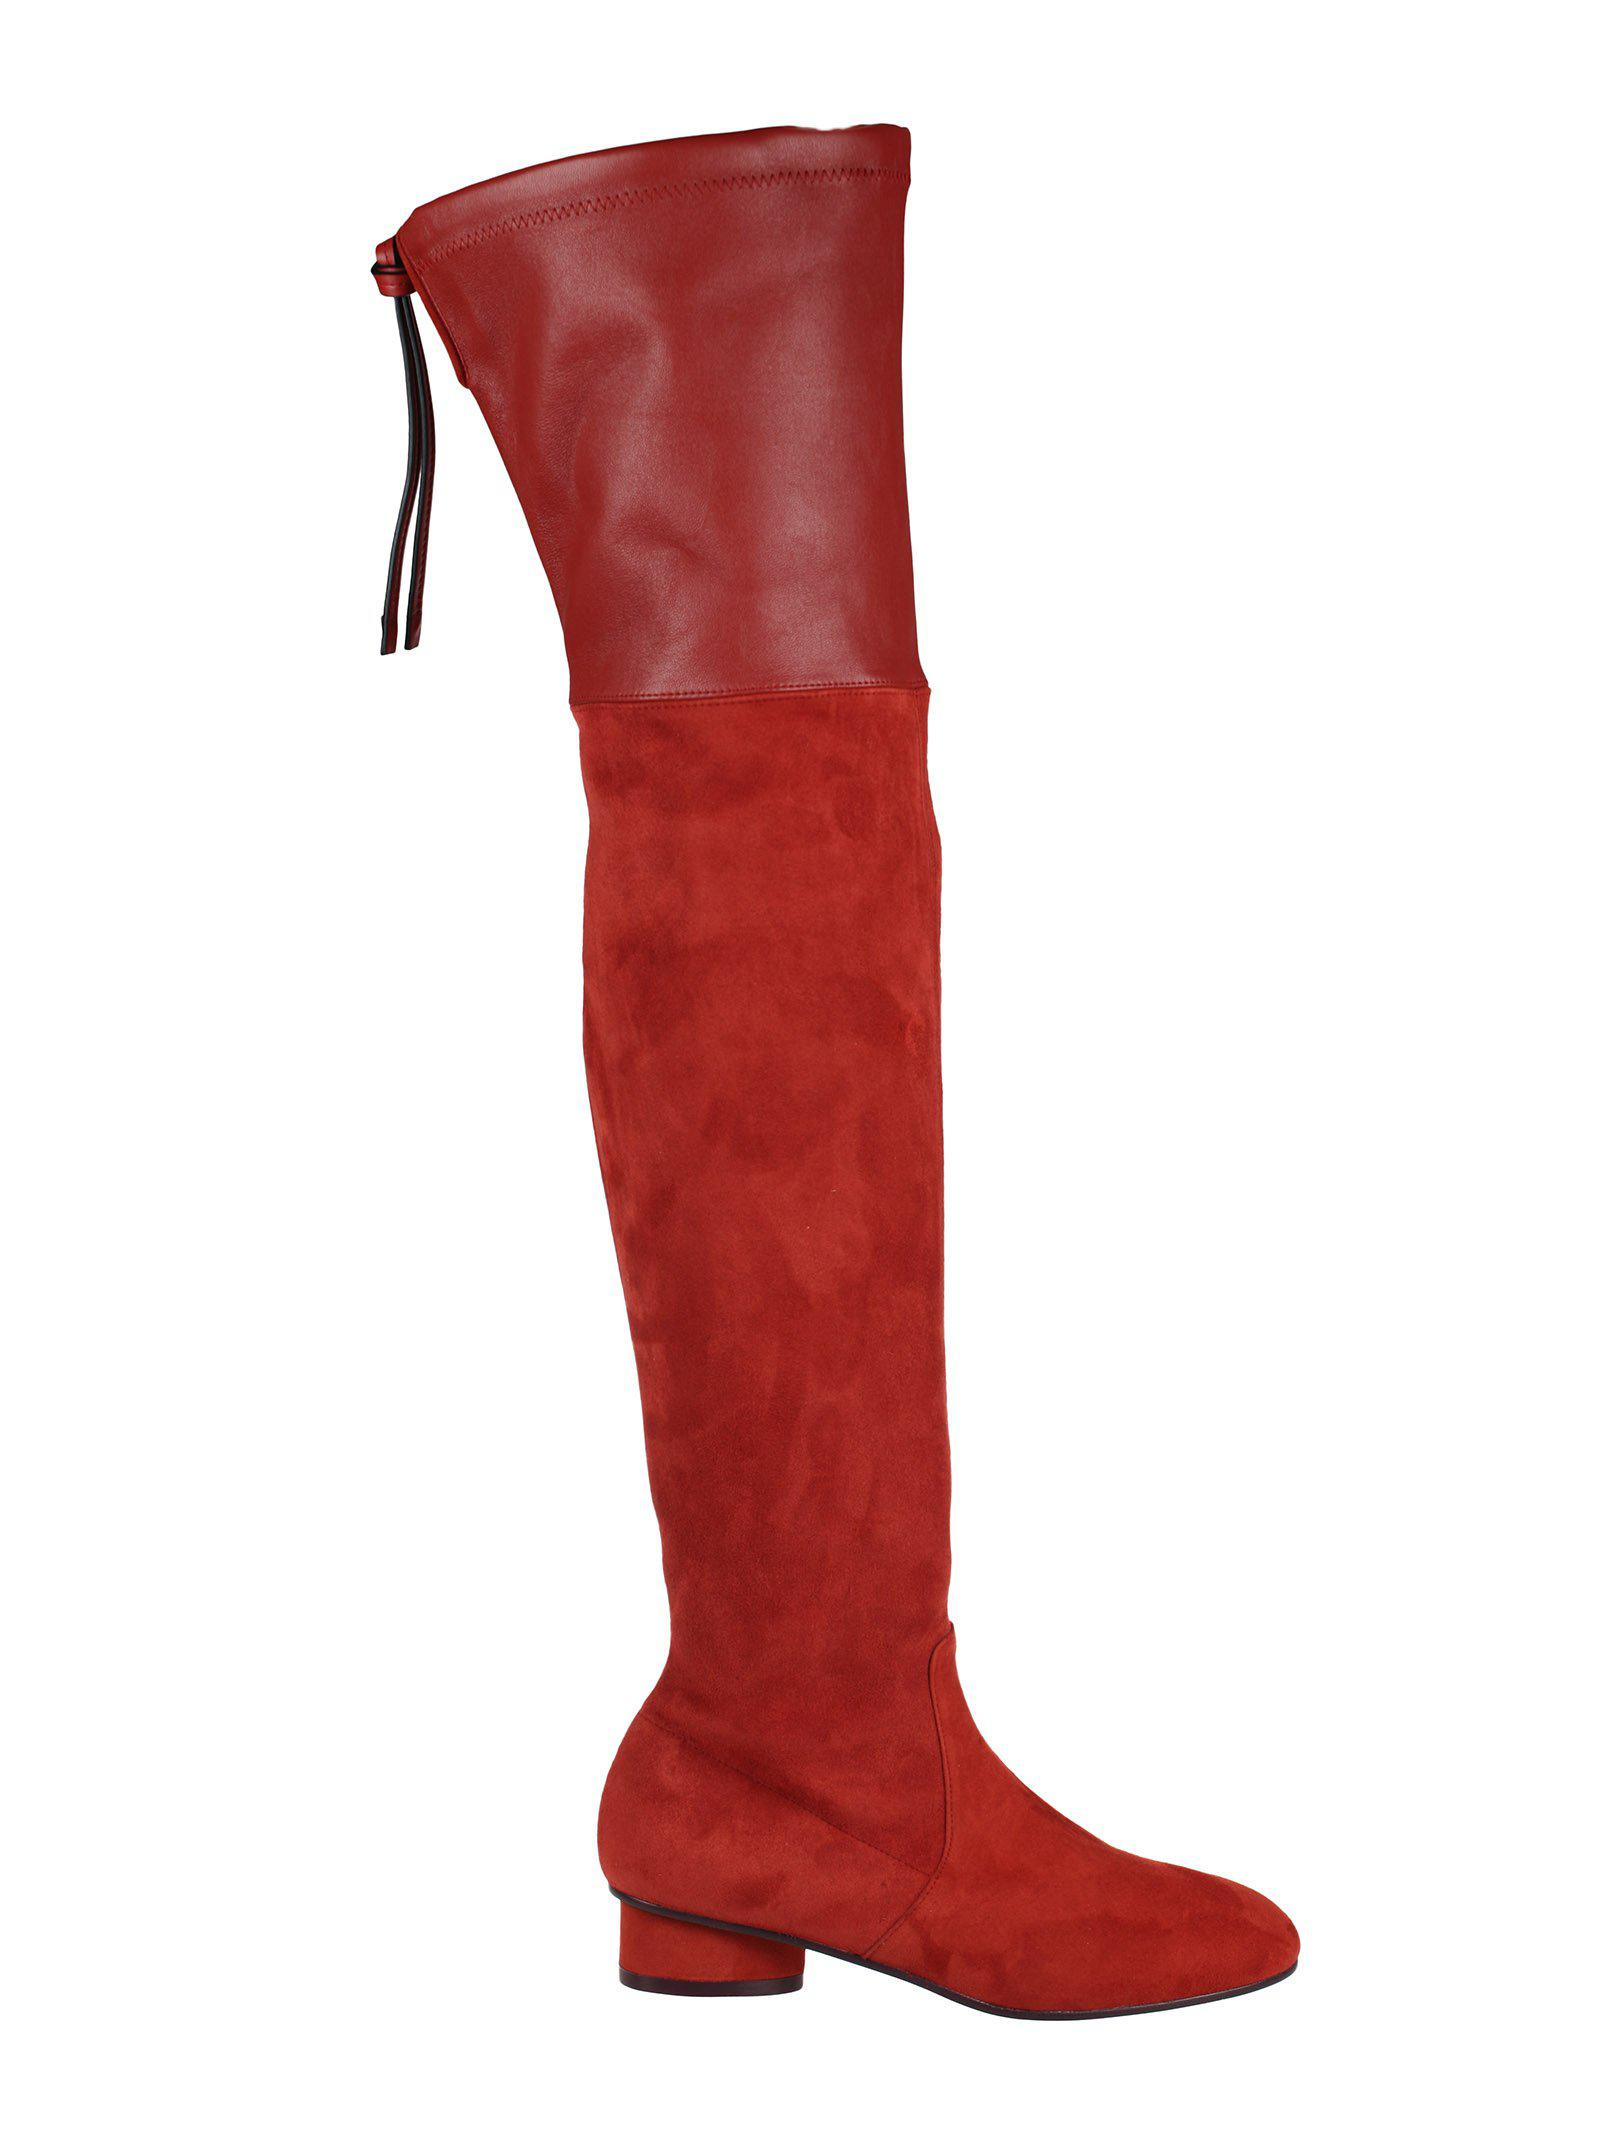 78d5771f0 Lyst - Stuart Weitzman Helena Thigh High Boots in Red